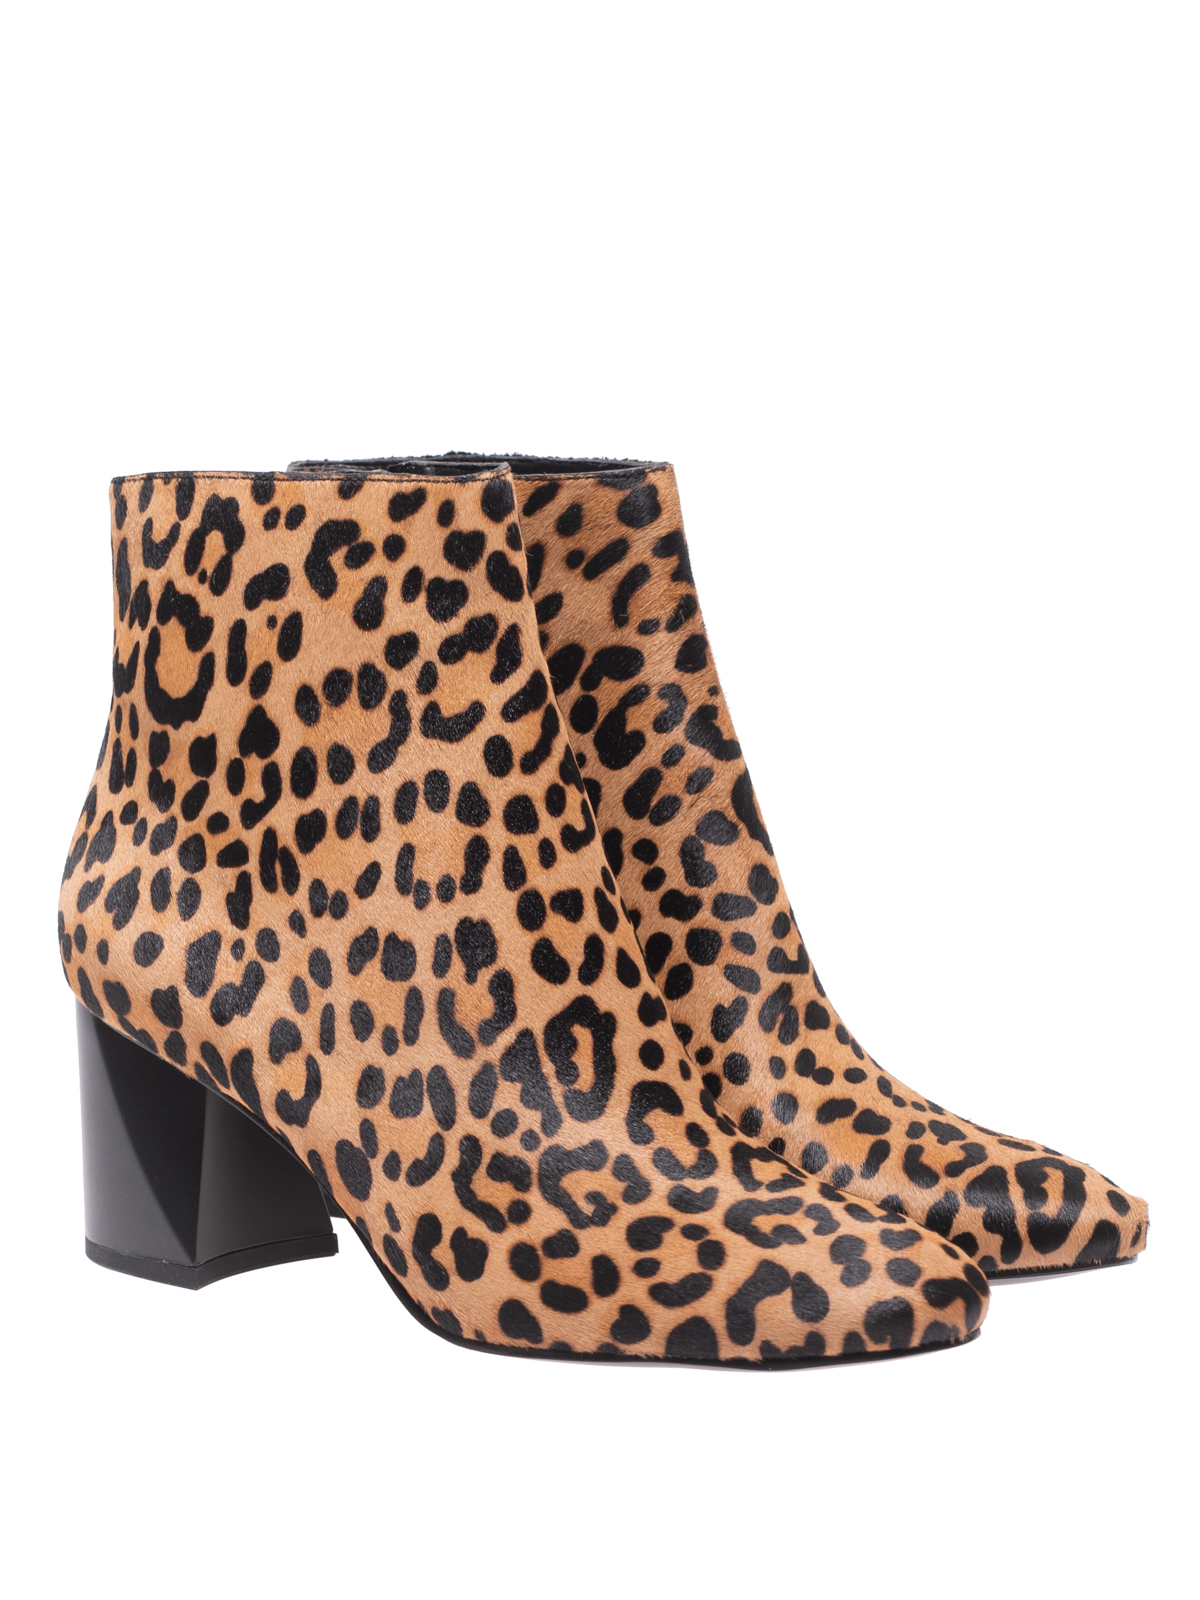 830c69a7d80e Kendall + Kylie: ankle boots online - Hadlee pony hair leopard print ankle  boots